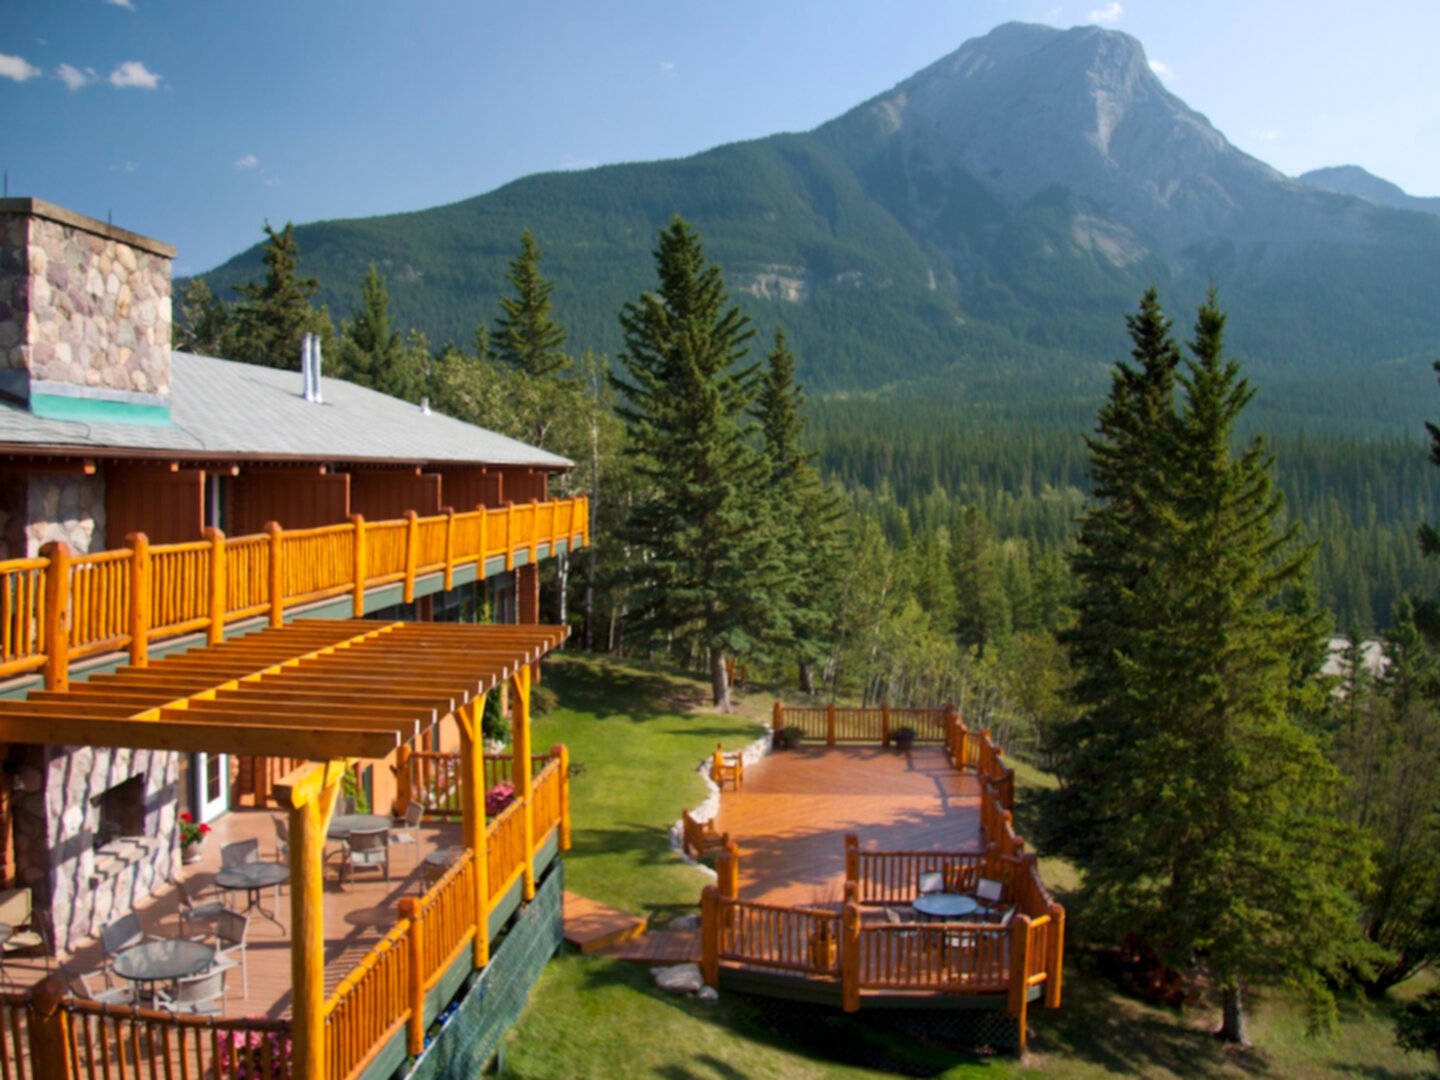 A house with a mountain in the background at Overlander Mountain Lodge.